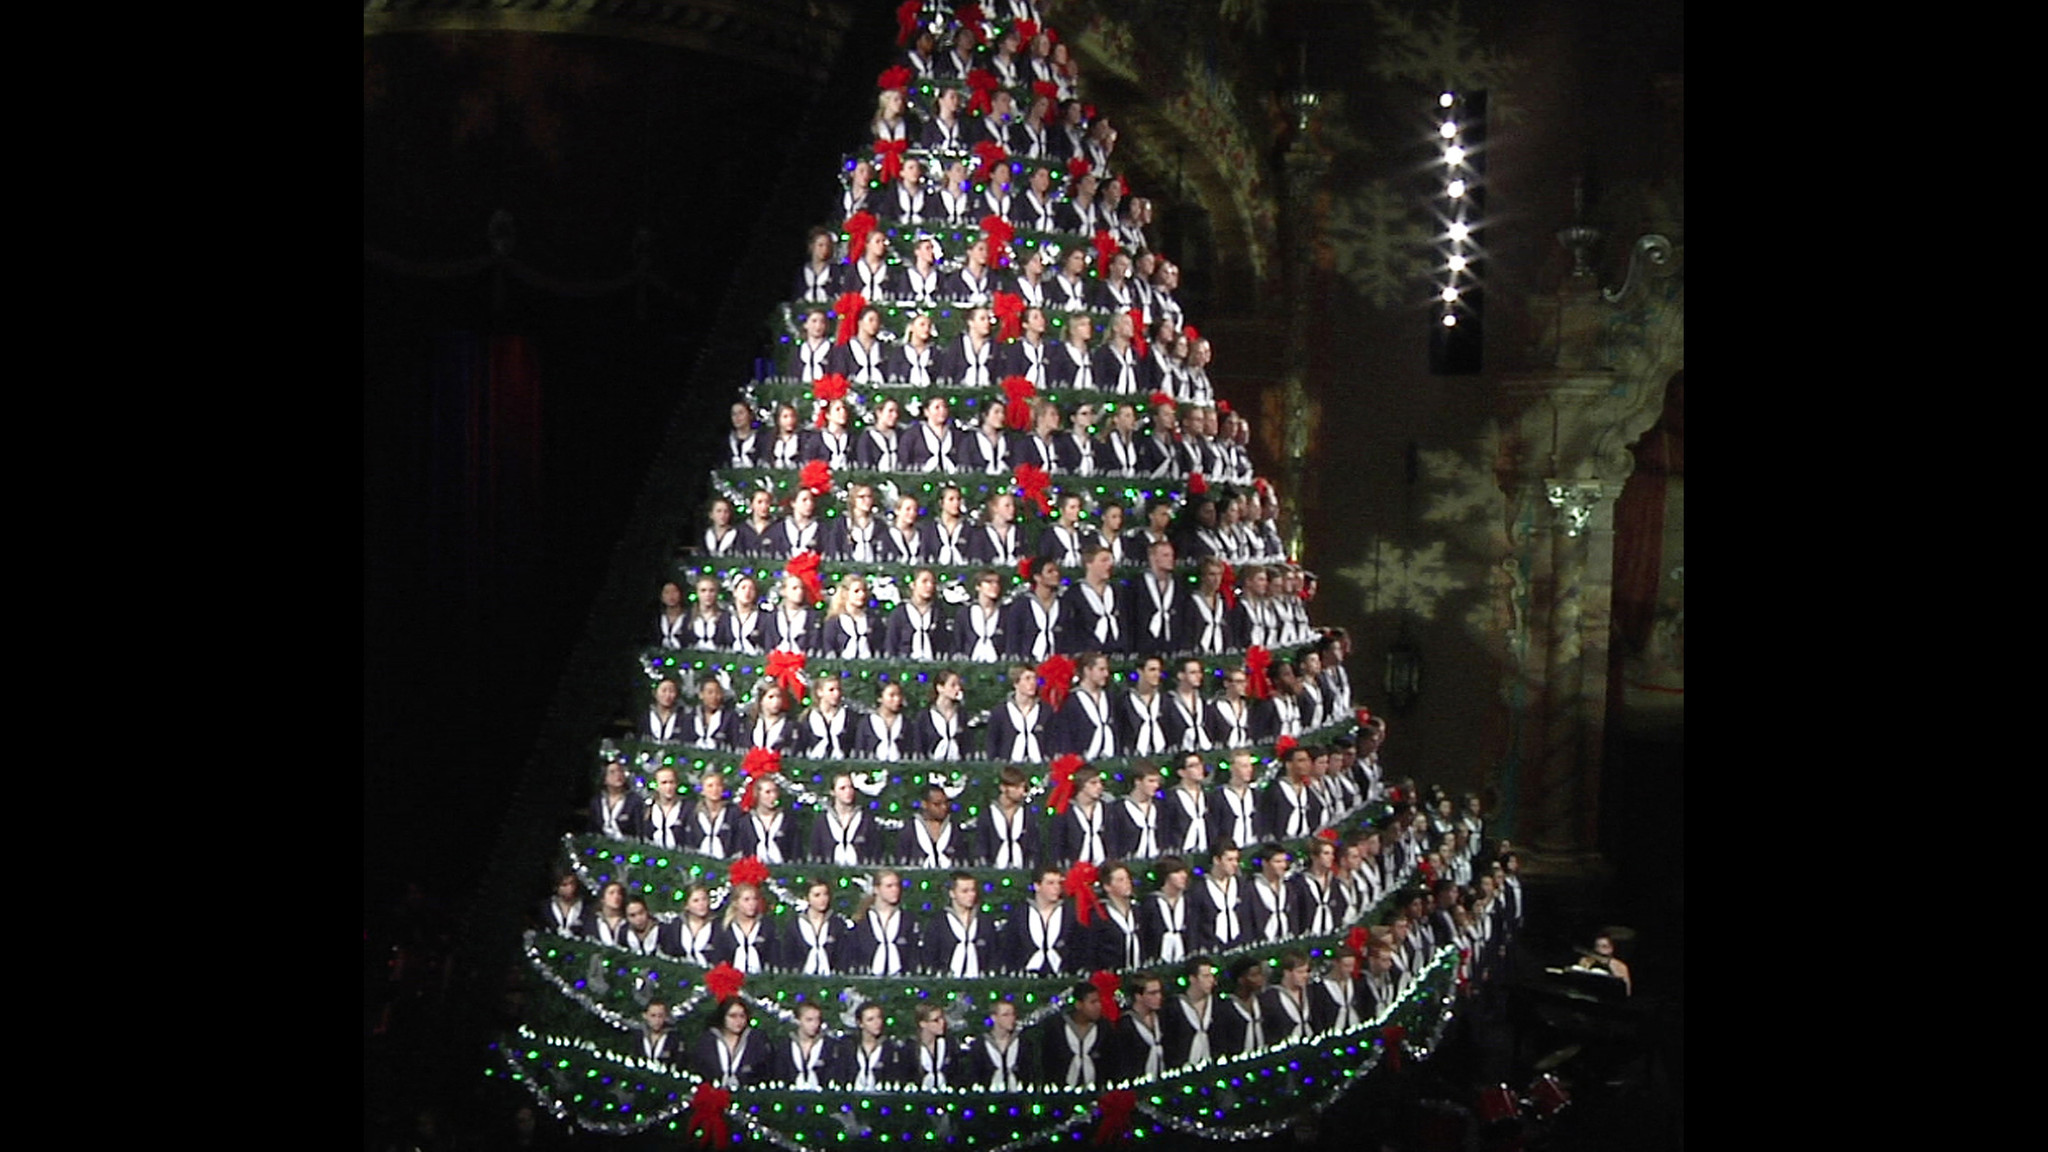 Christmas Trees Made Of Beer Kegs? And People? Photos Of